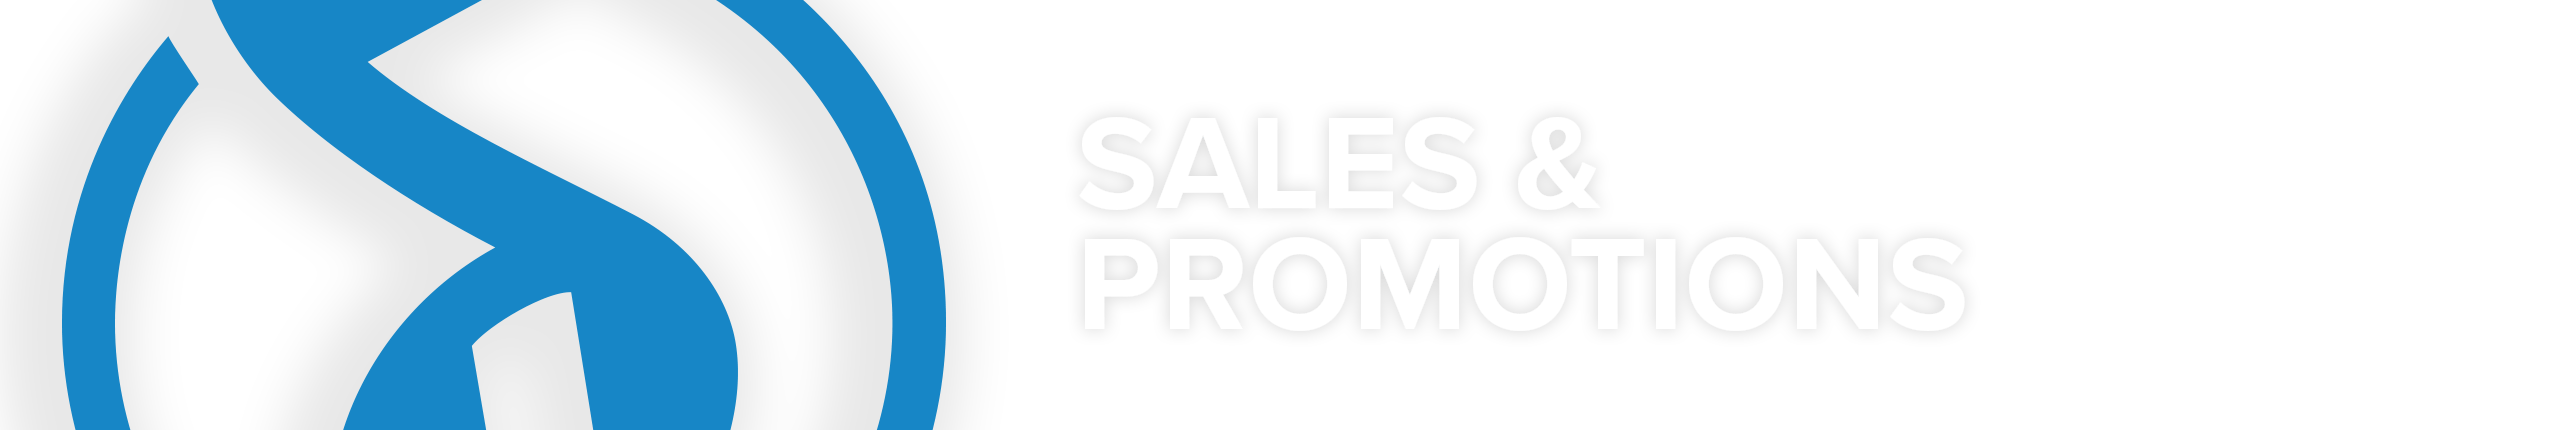 Musicnotes Sales and Promotions